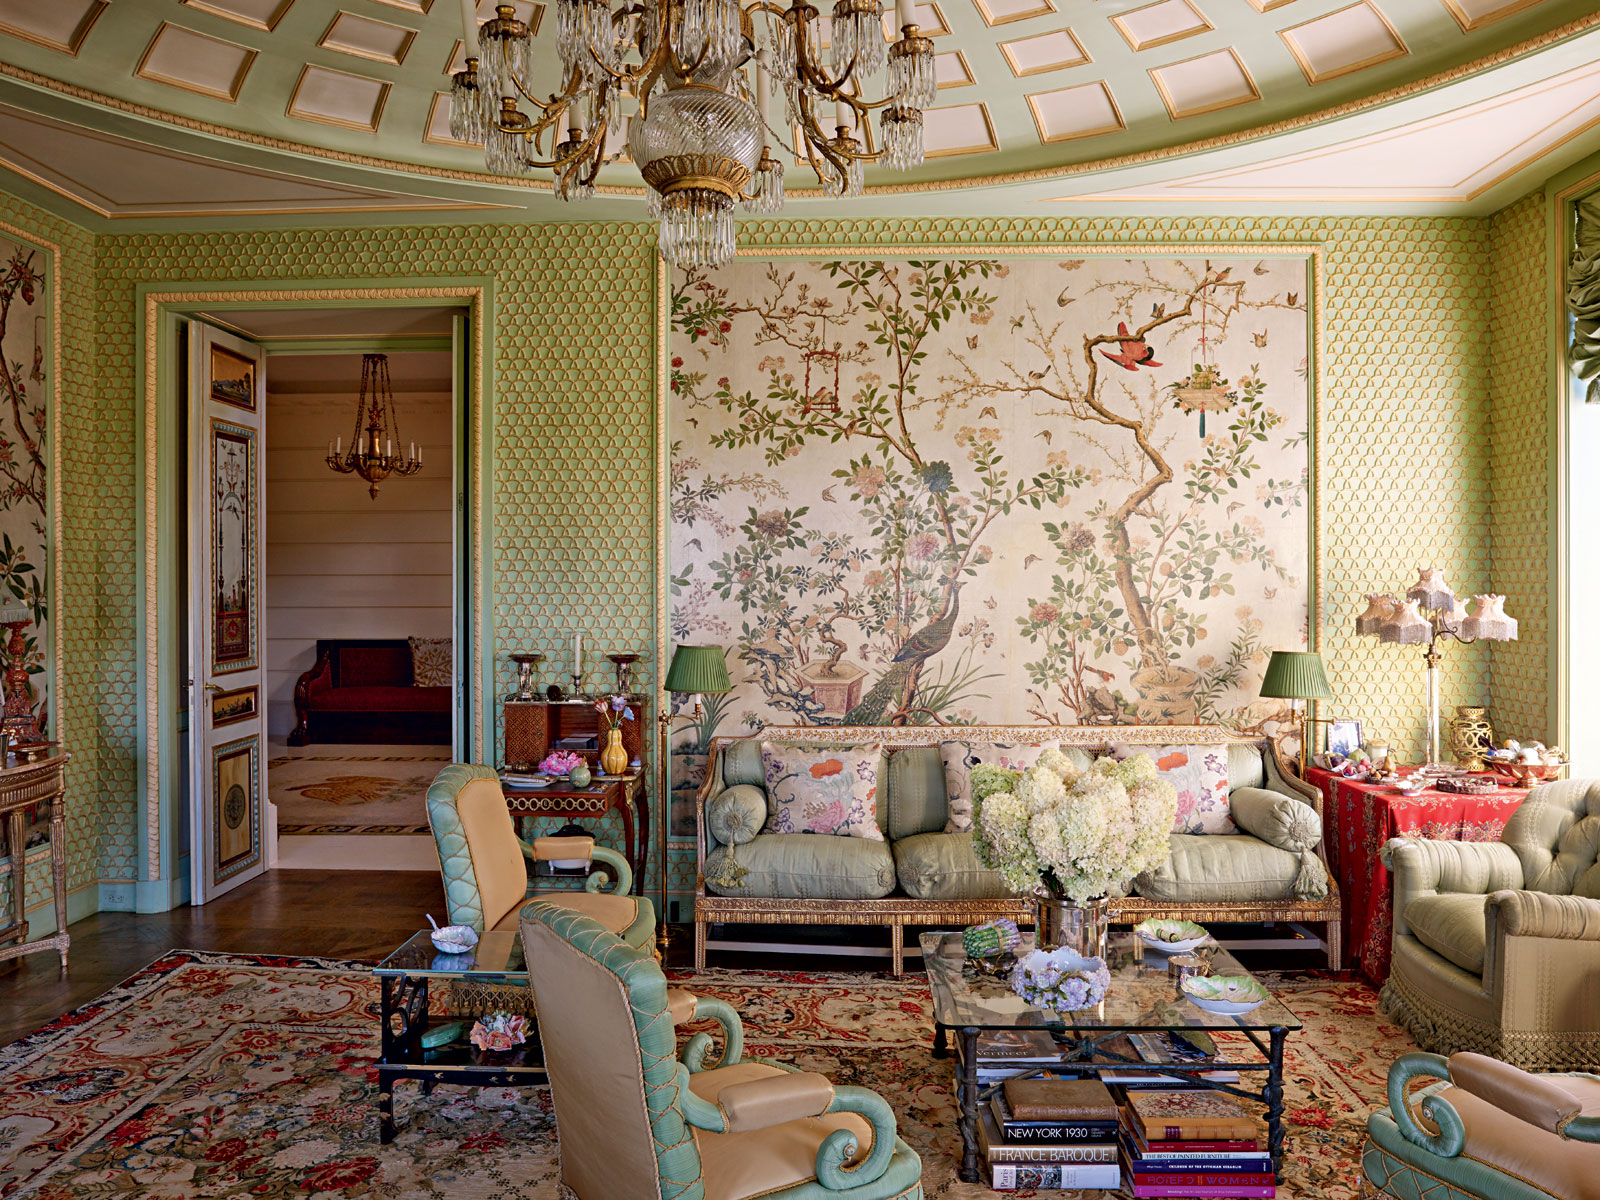 Legendary French decorator Henri Samuel, a favorite in high-society homes, was inspired by a range of styles in his work, as seen in the Winter Garden room, which nods to 18th-century European chinoiserie.